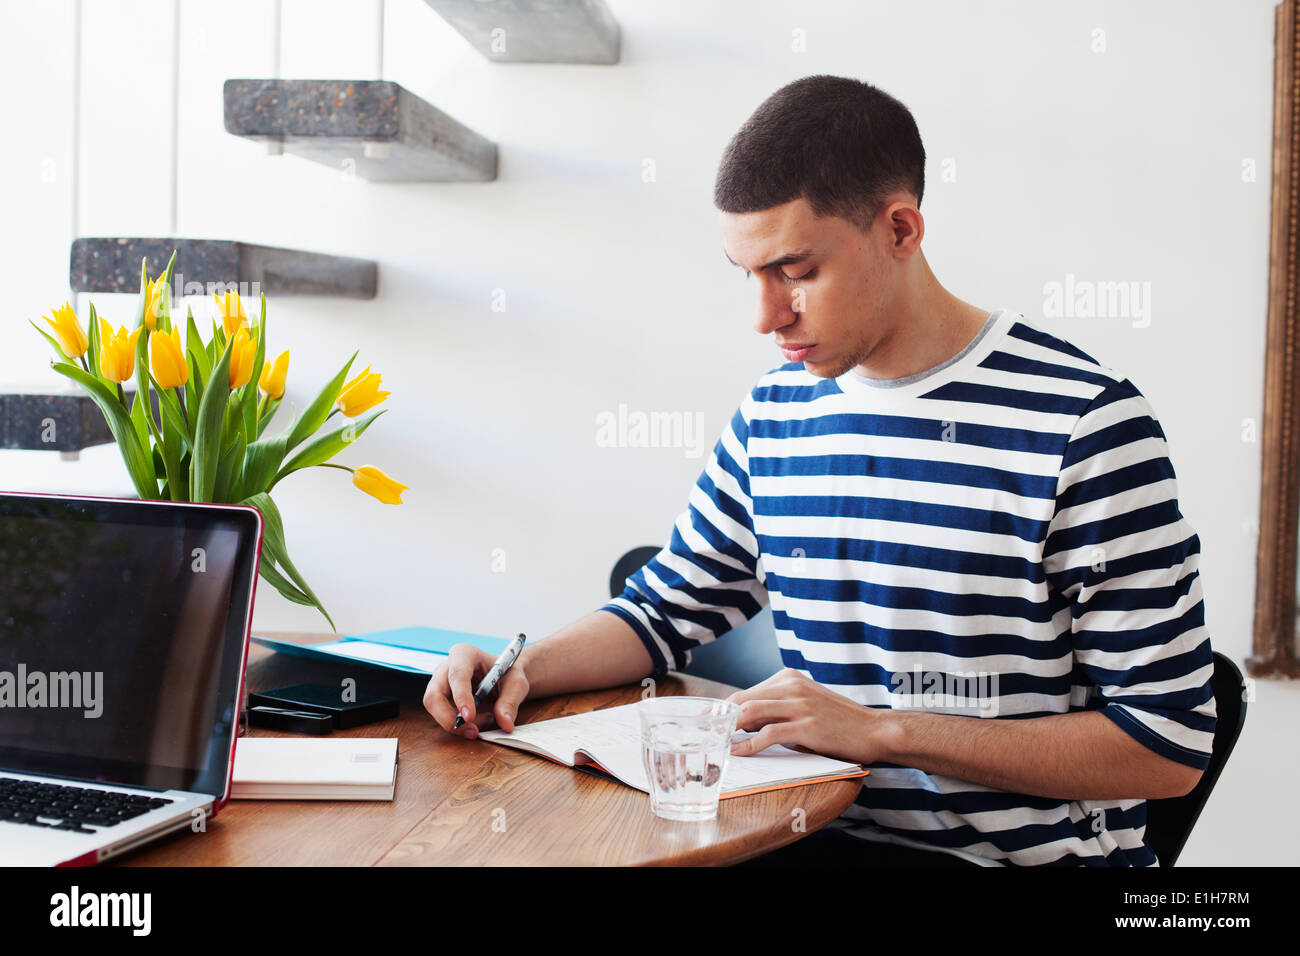 Young man sitting at table, writing in notebook - Stock Image